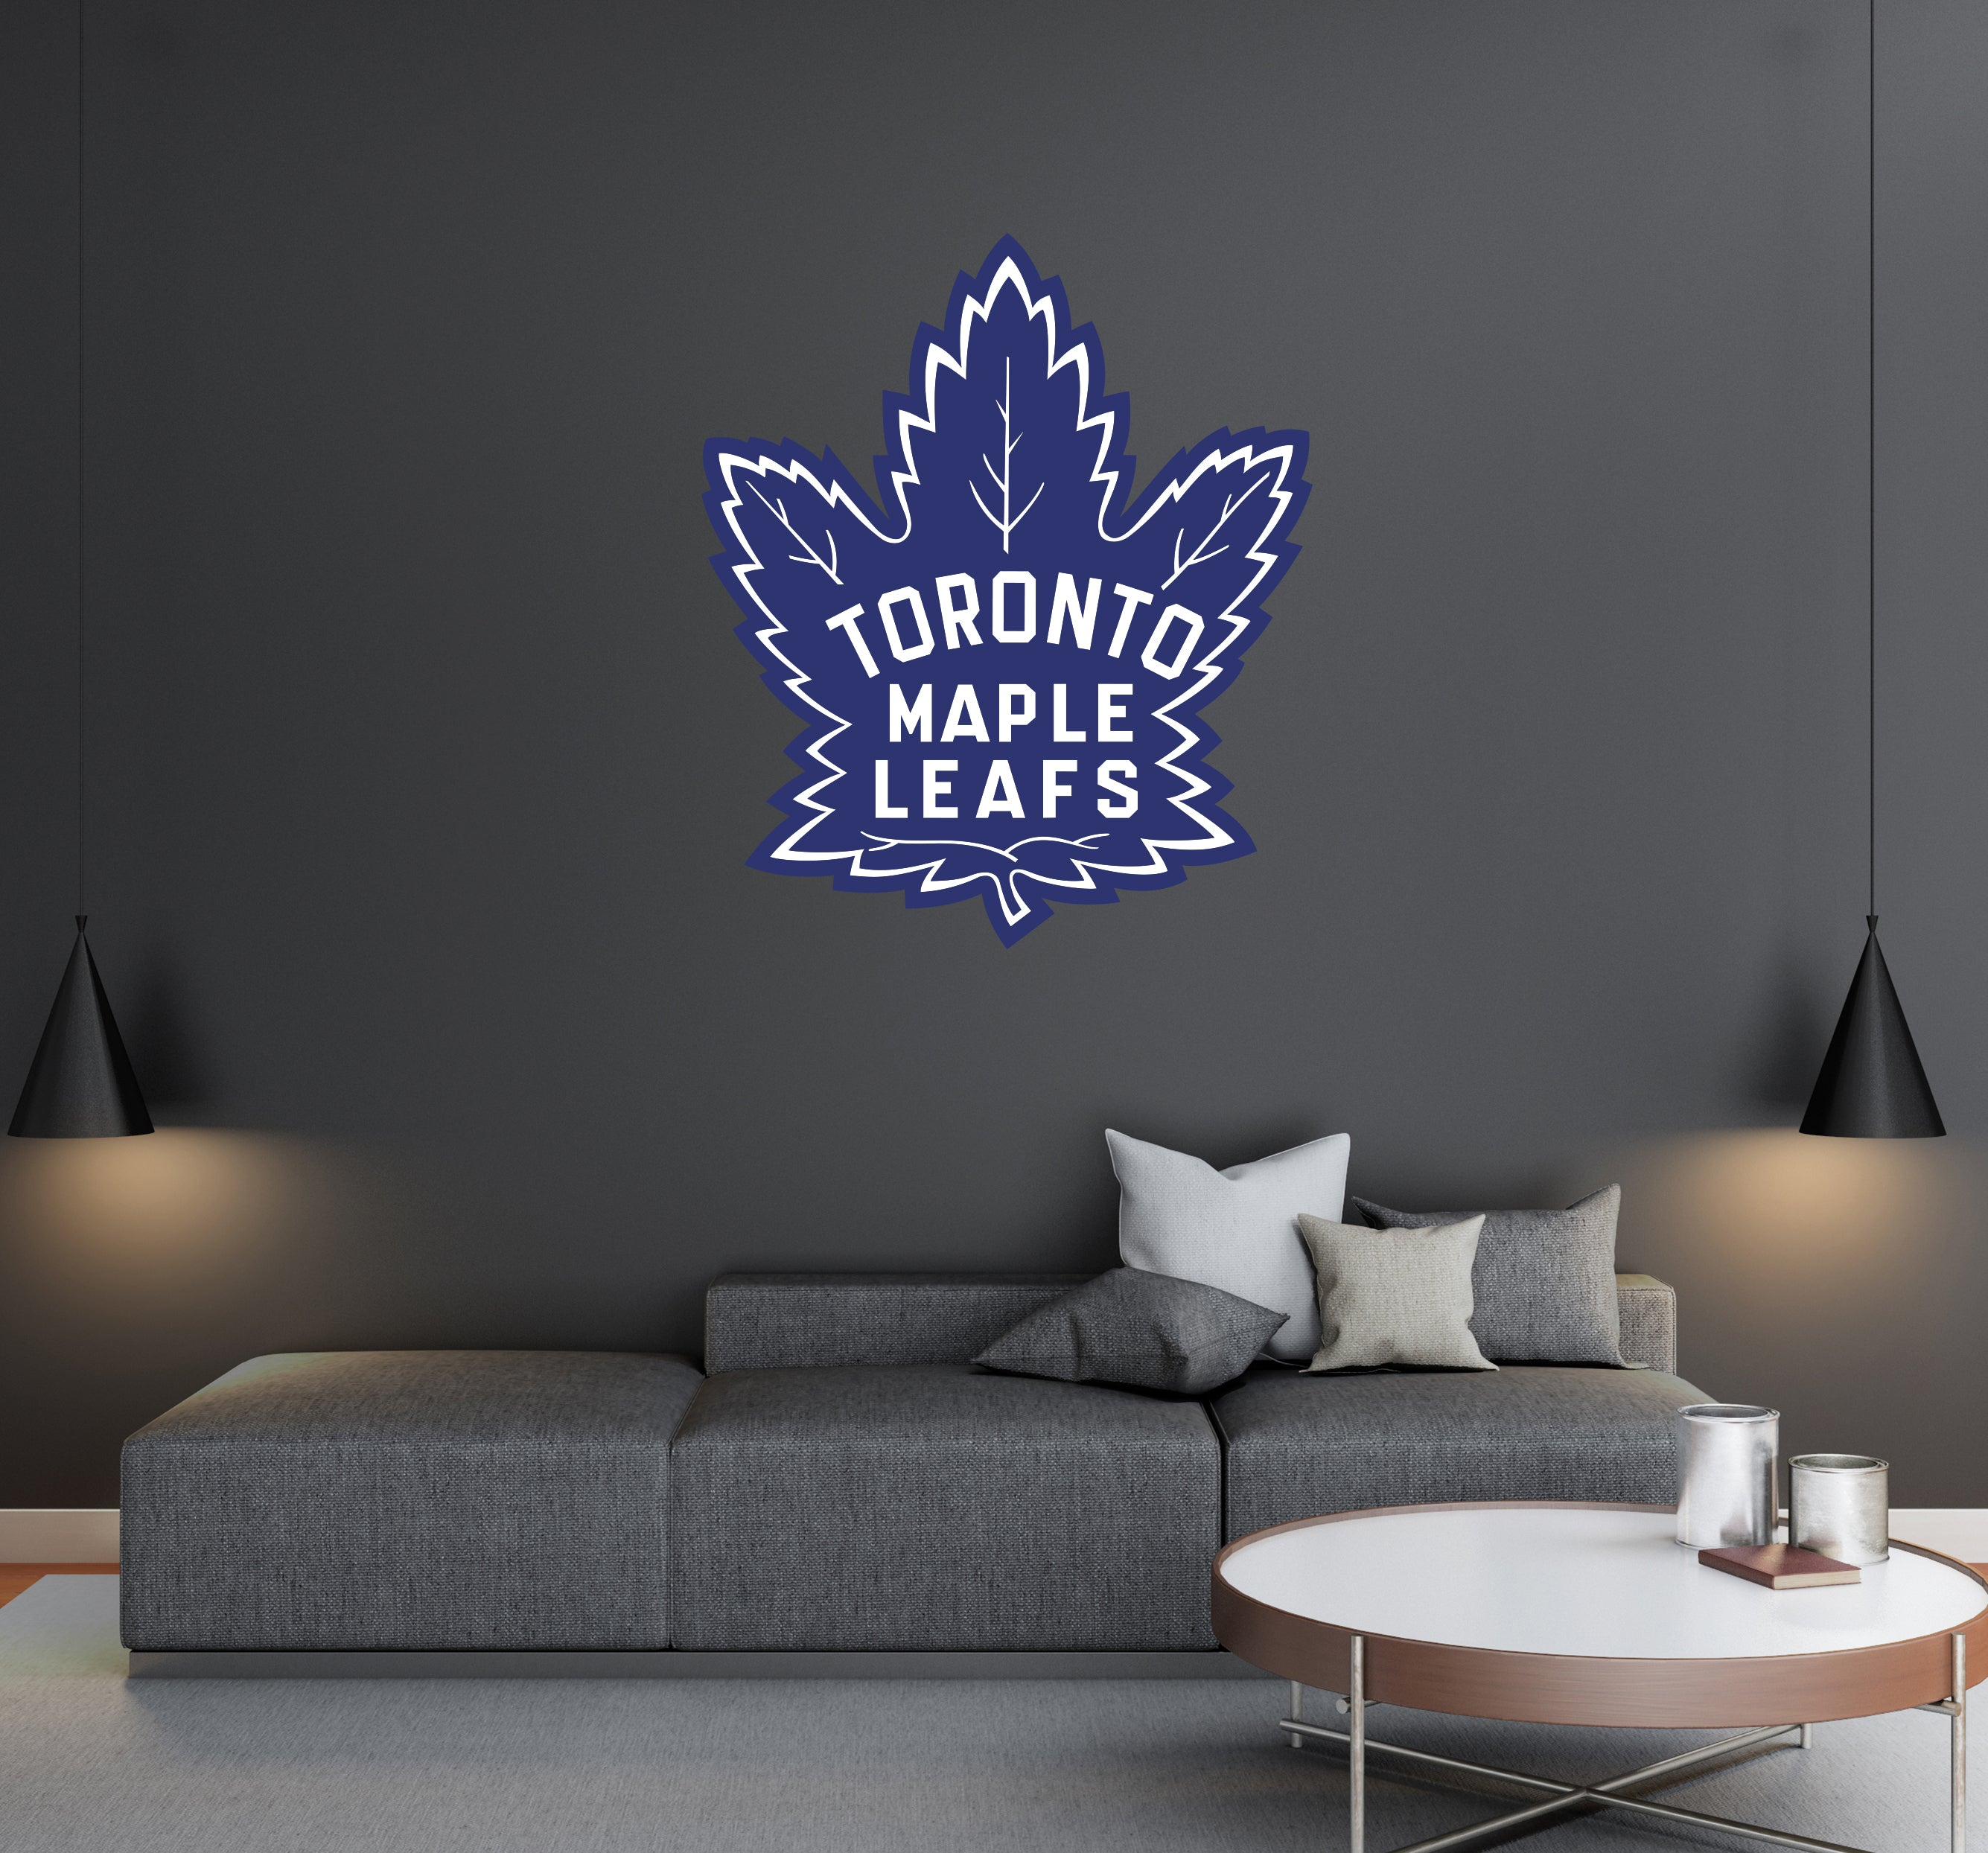 Toronto Maple Leafs - NHL Hockey Team Logo - Wall Decal Removable & Reusable For Home Bedroom